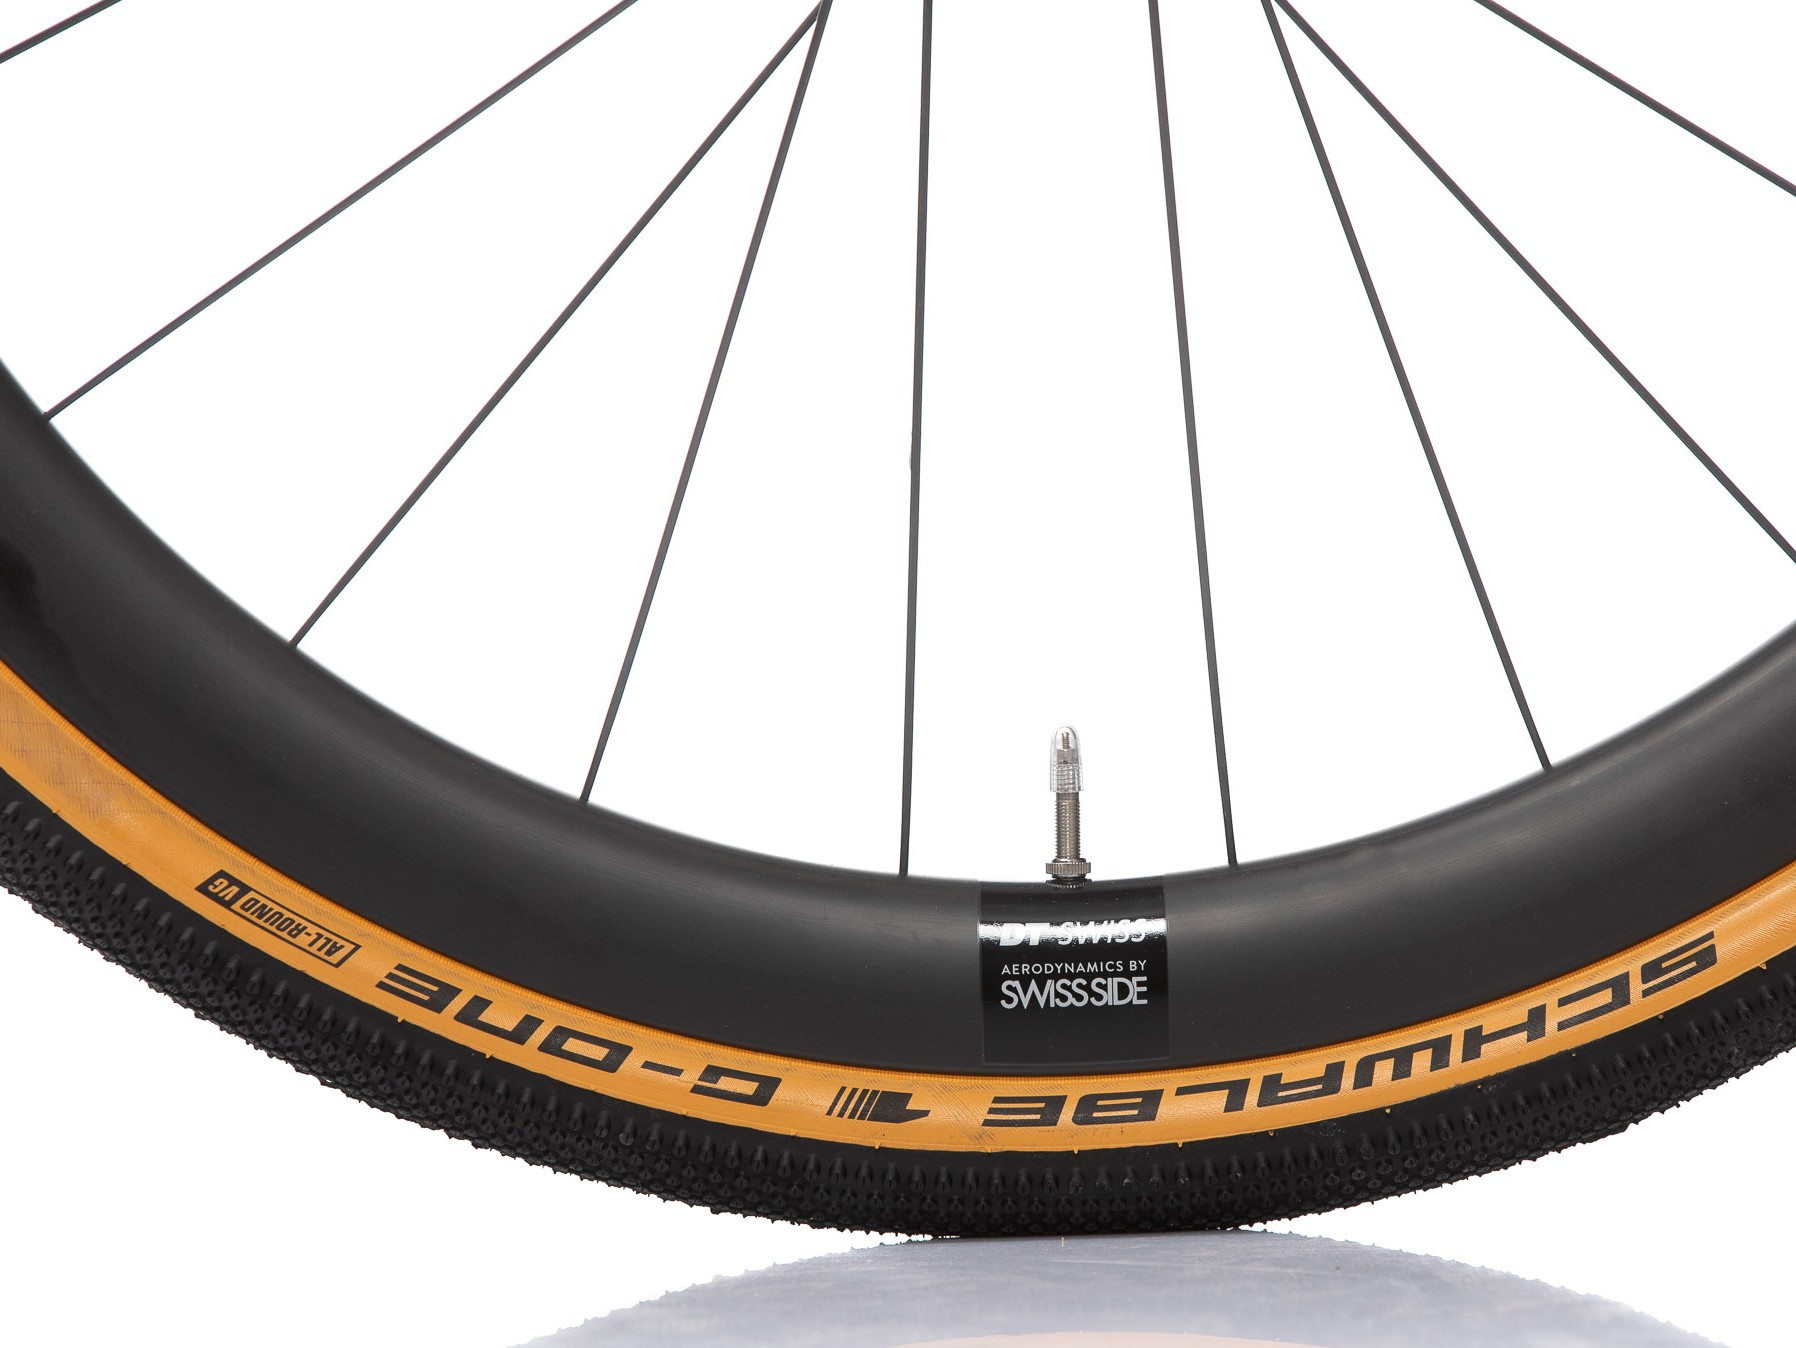 DT Swiss GRC 1400-42 with Schwalbe G-One Allround in size 40-622